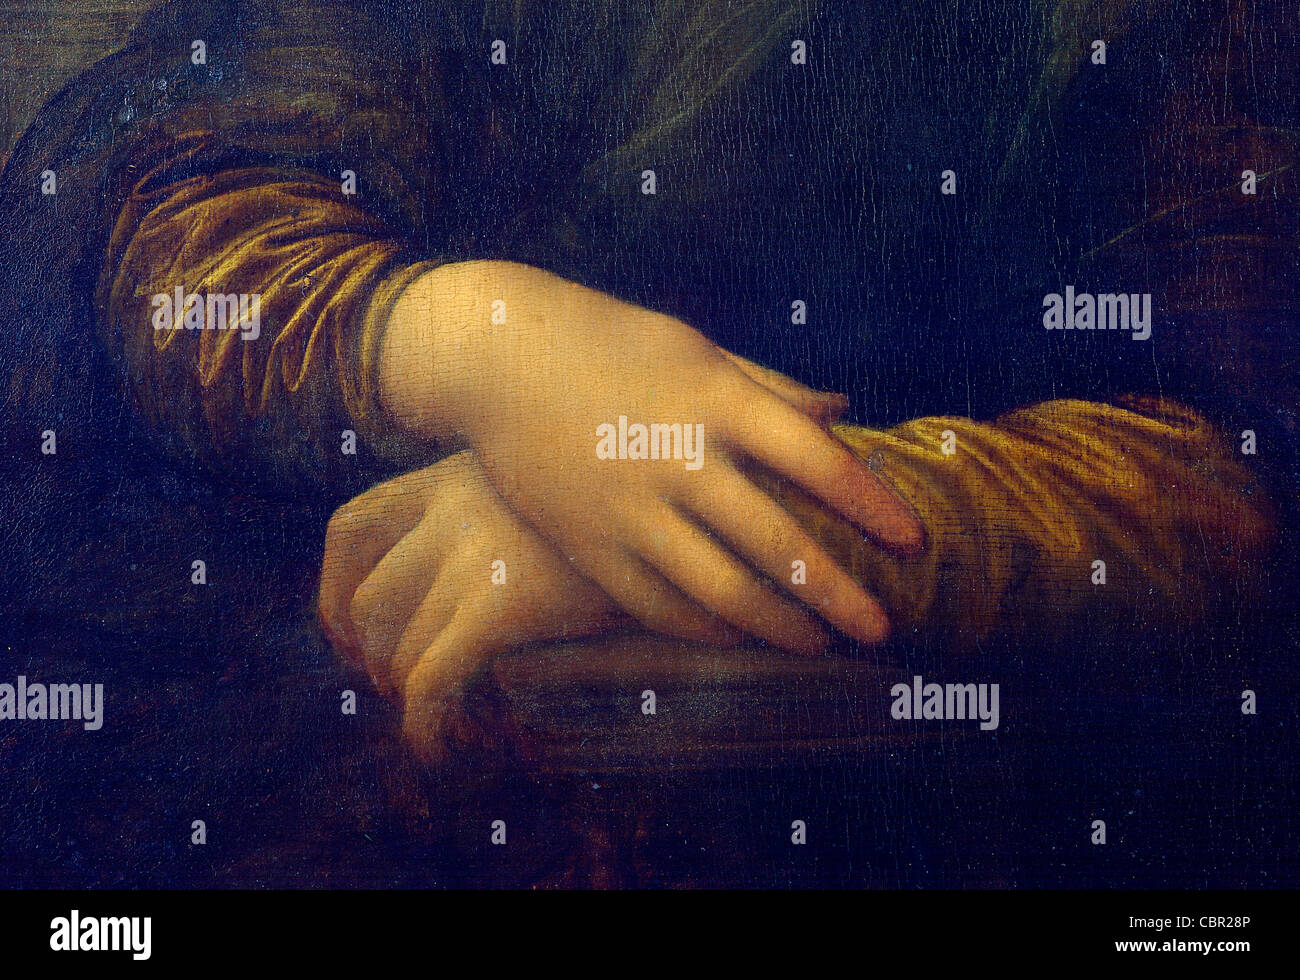 Hands of Mona Lisa by Leonardo da Vinci - Stock Image